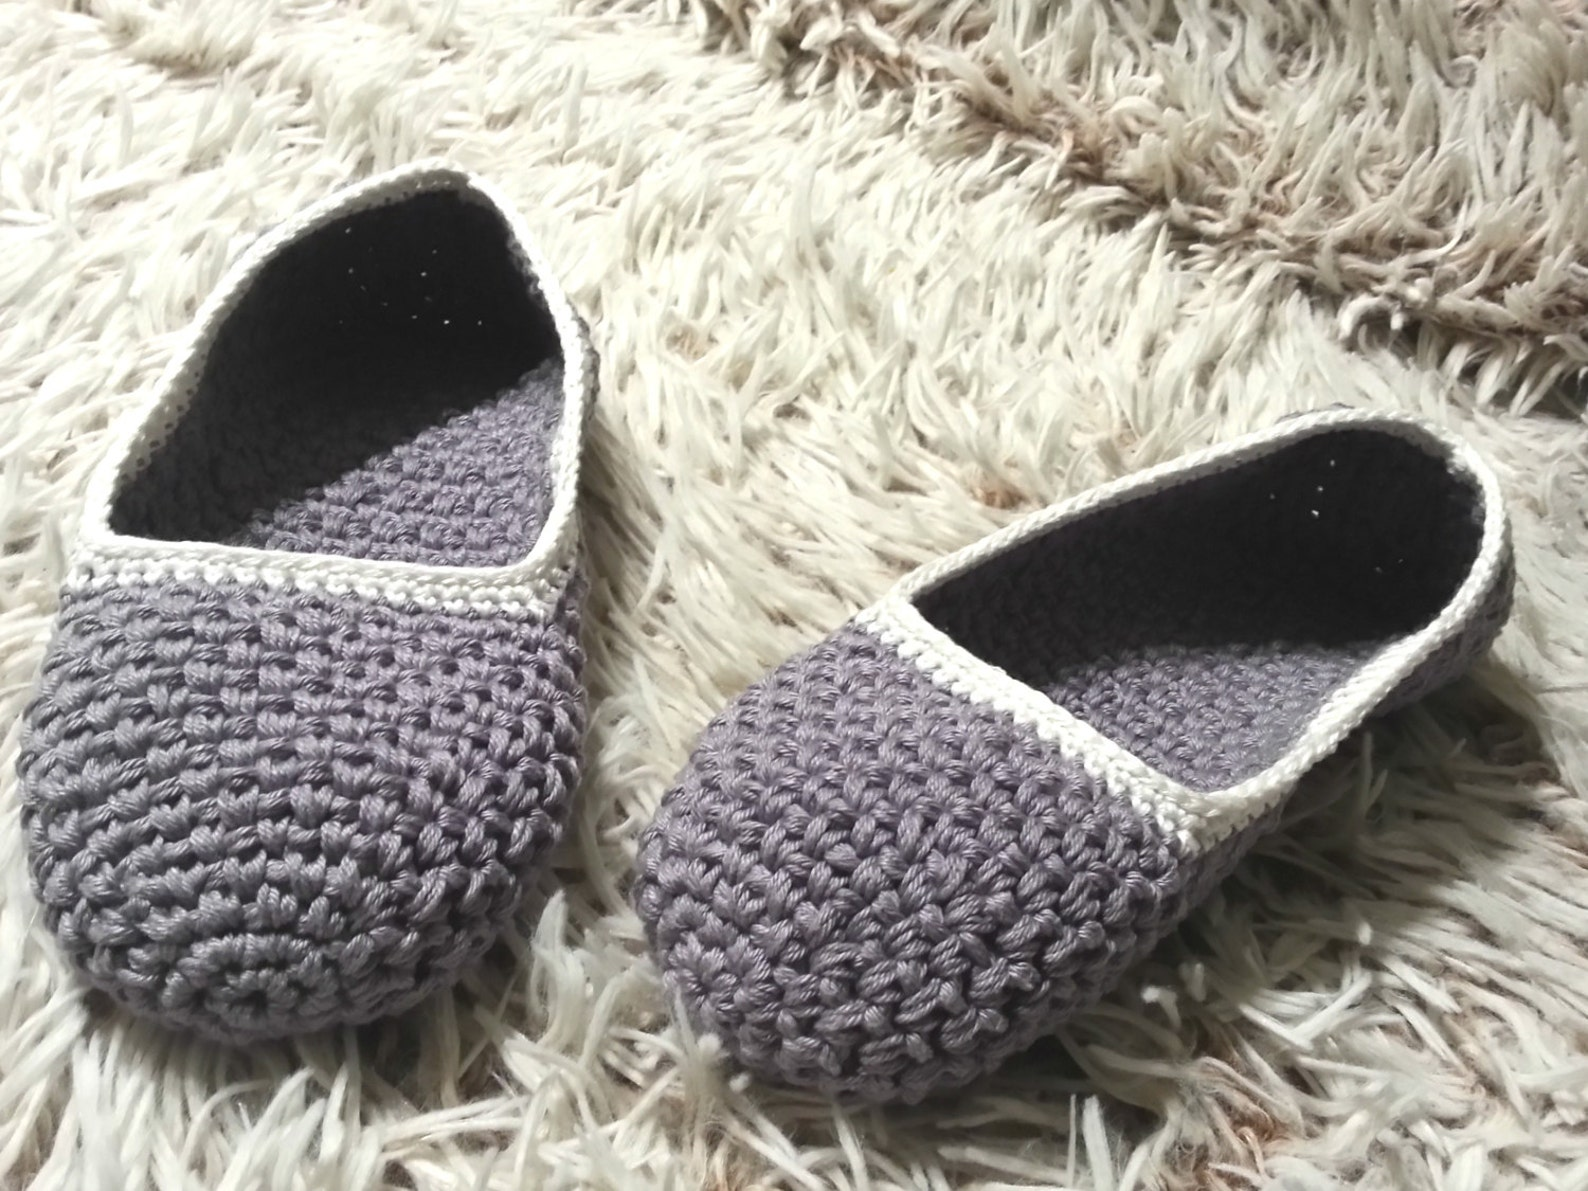 crochet slippers, women slippers, cotton slippers, gift for women, healthy home shoes, non-slip slippers, ballet flats, handmade